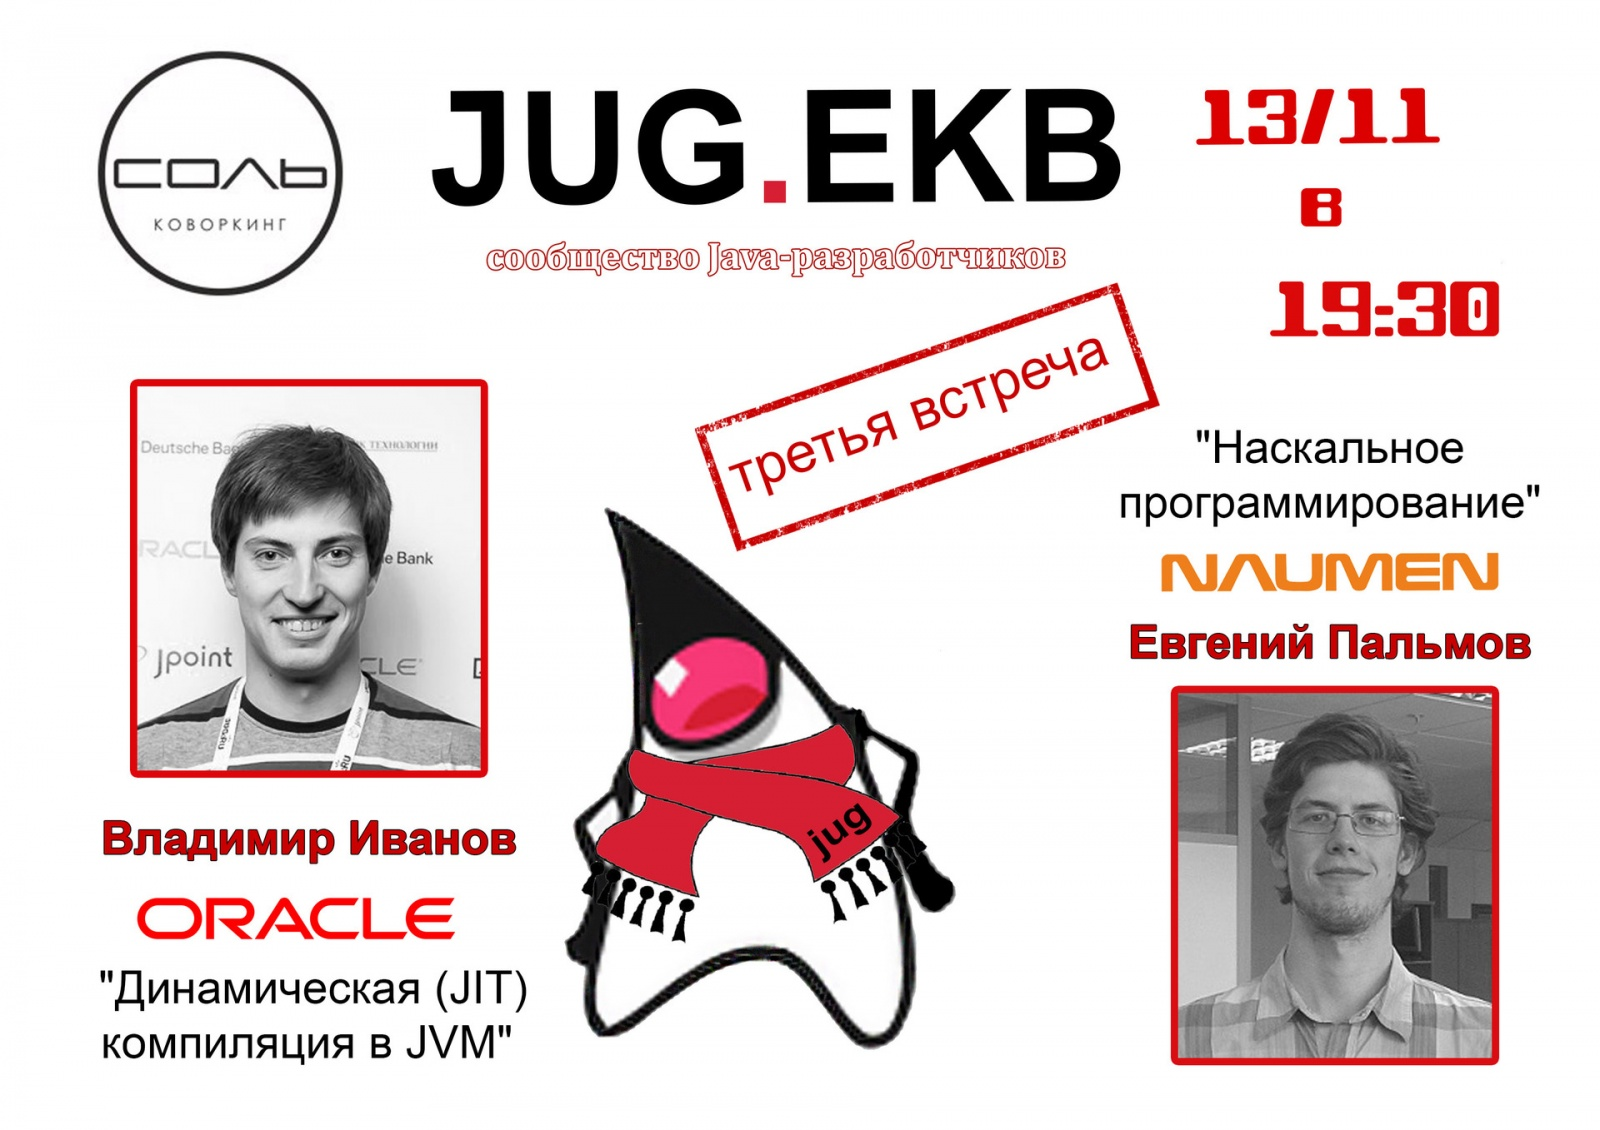 Анонс третьей встречи Java User Group EKB